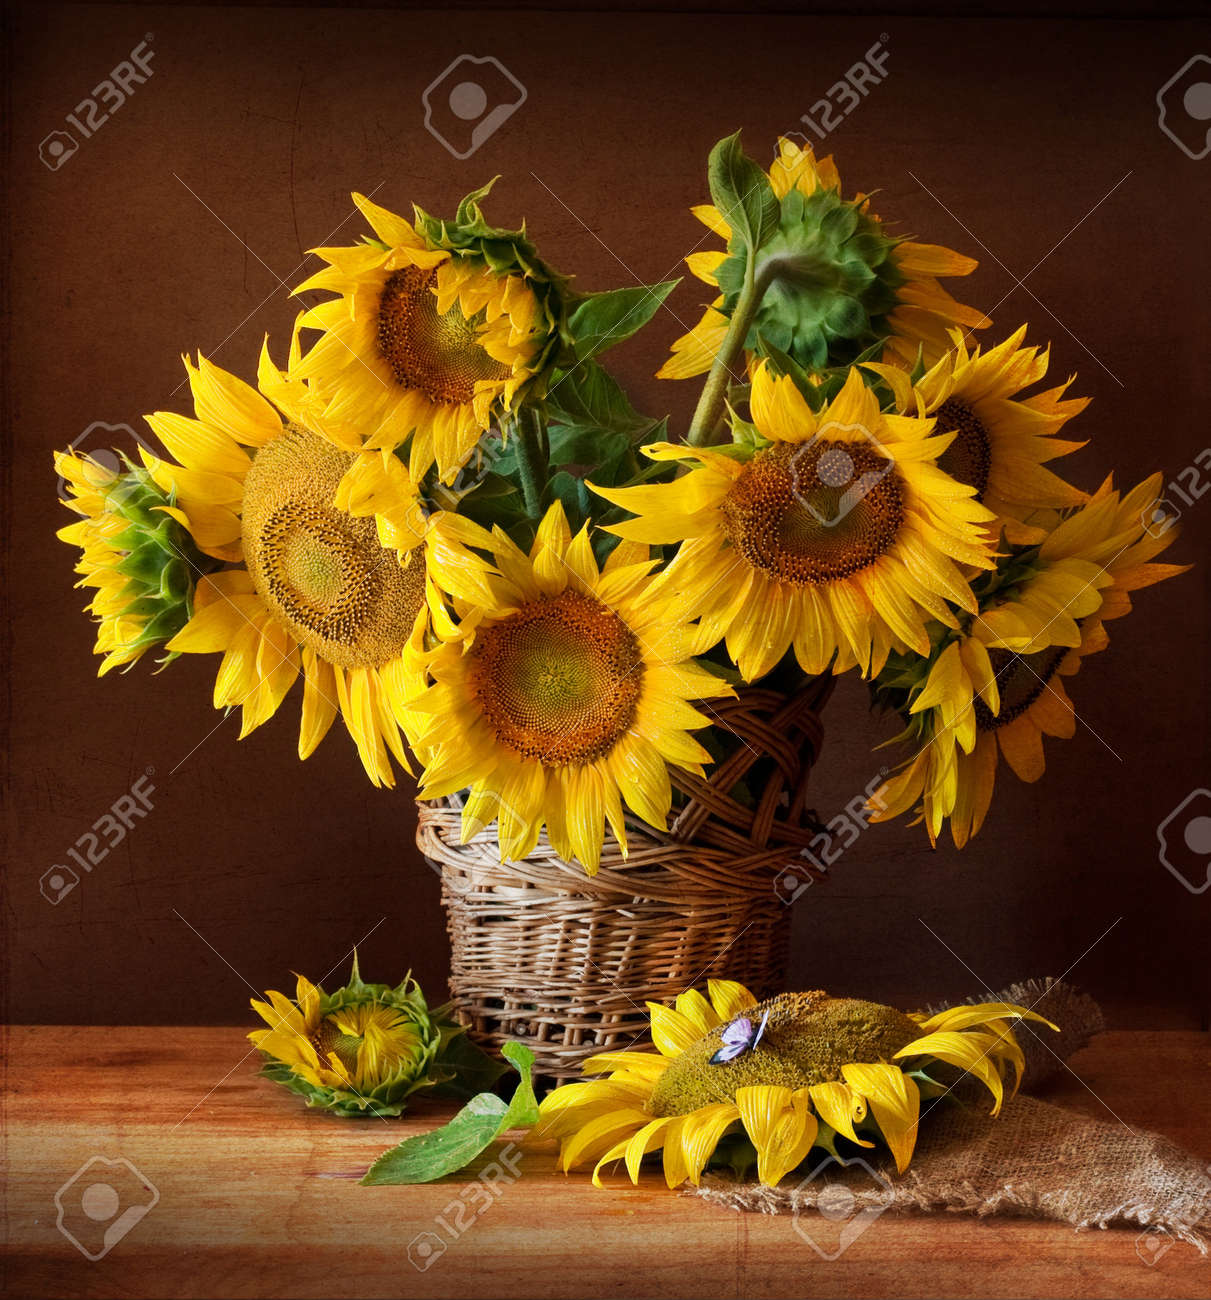 Still Life with Sunflower and Butterfly Stock Photo - 8641537